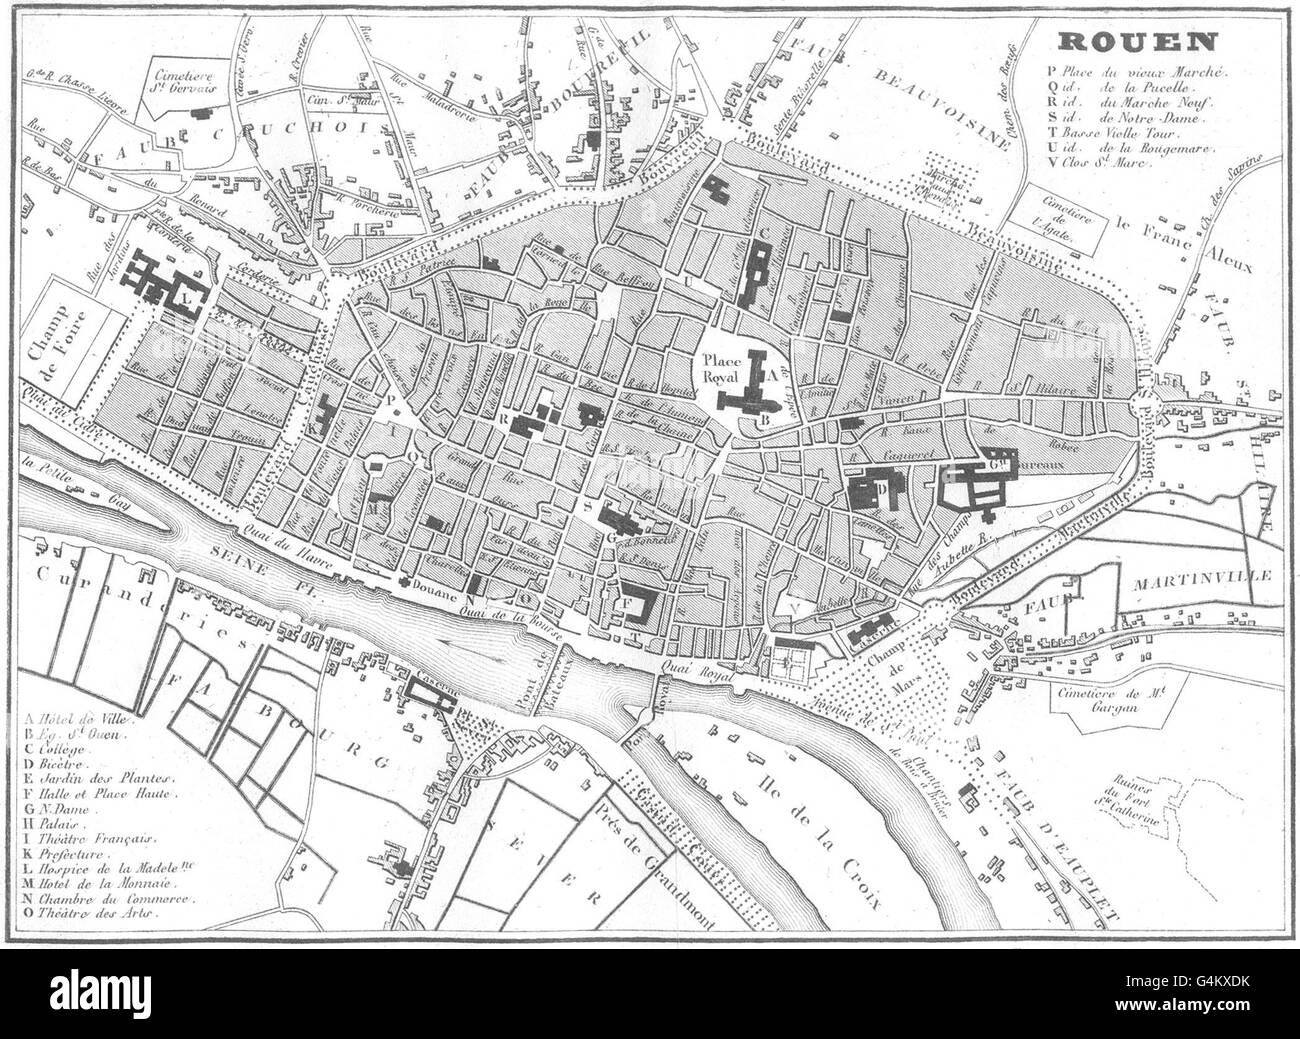 Map Rouen France Black and White Stock Photos & Images - Alamy